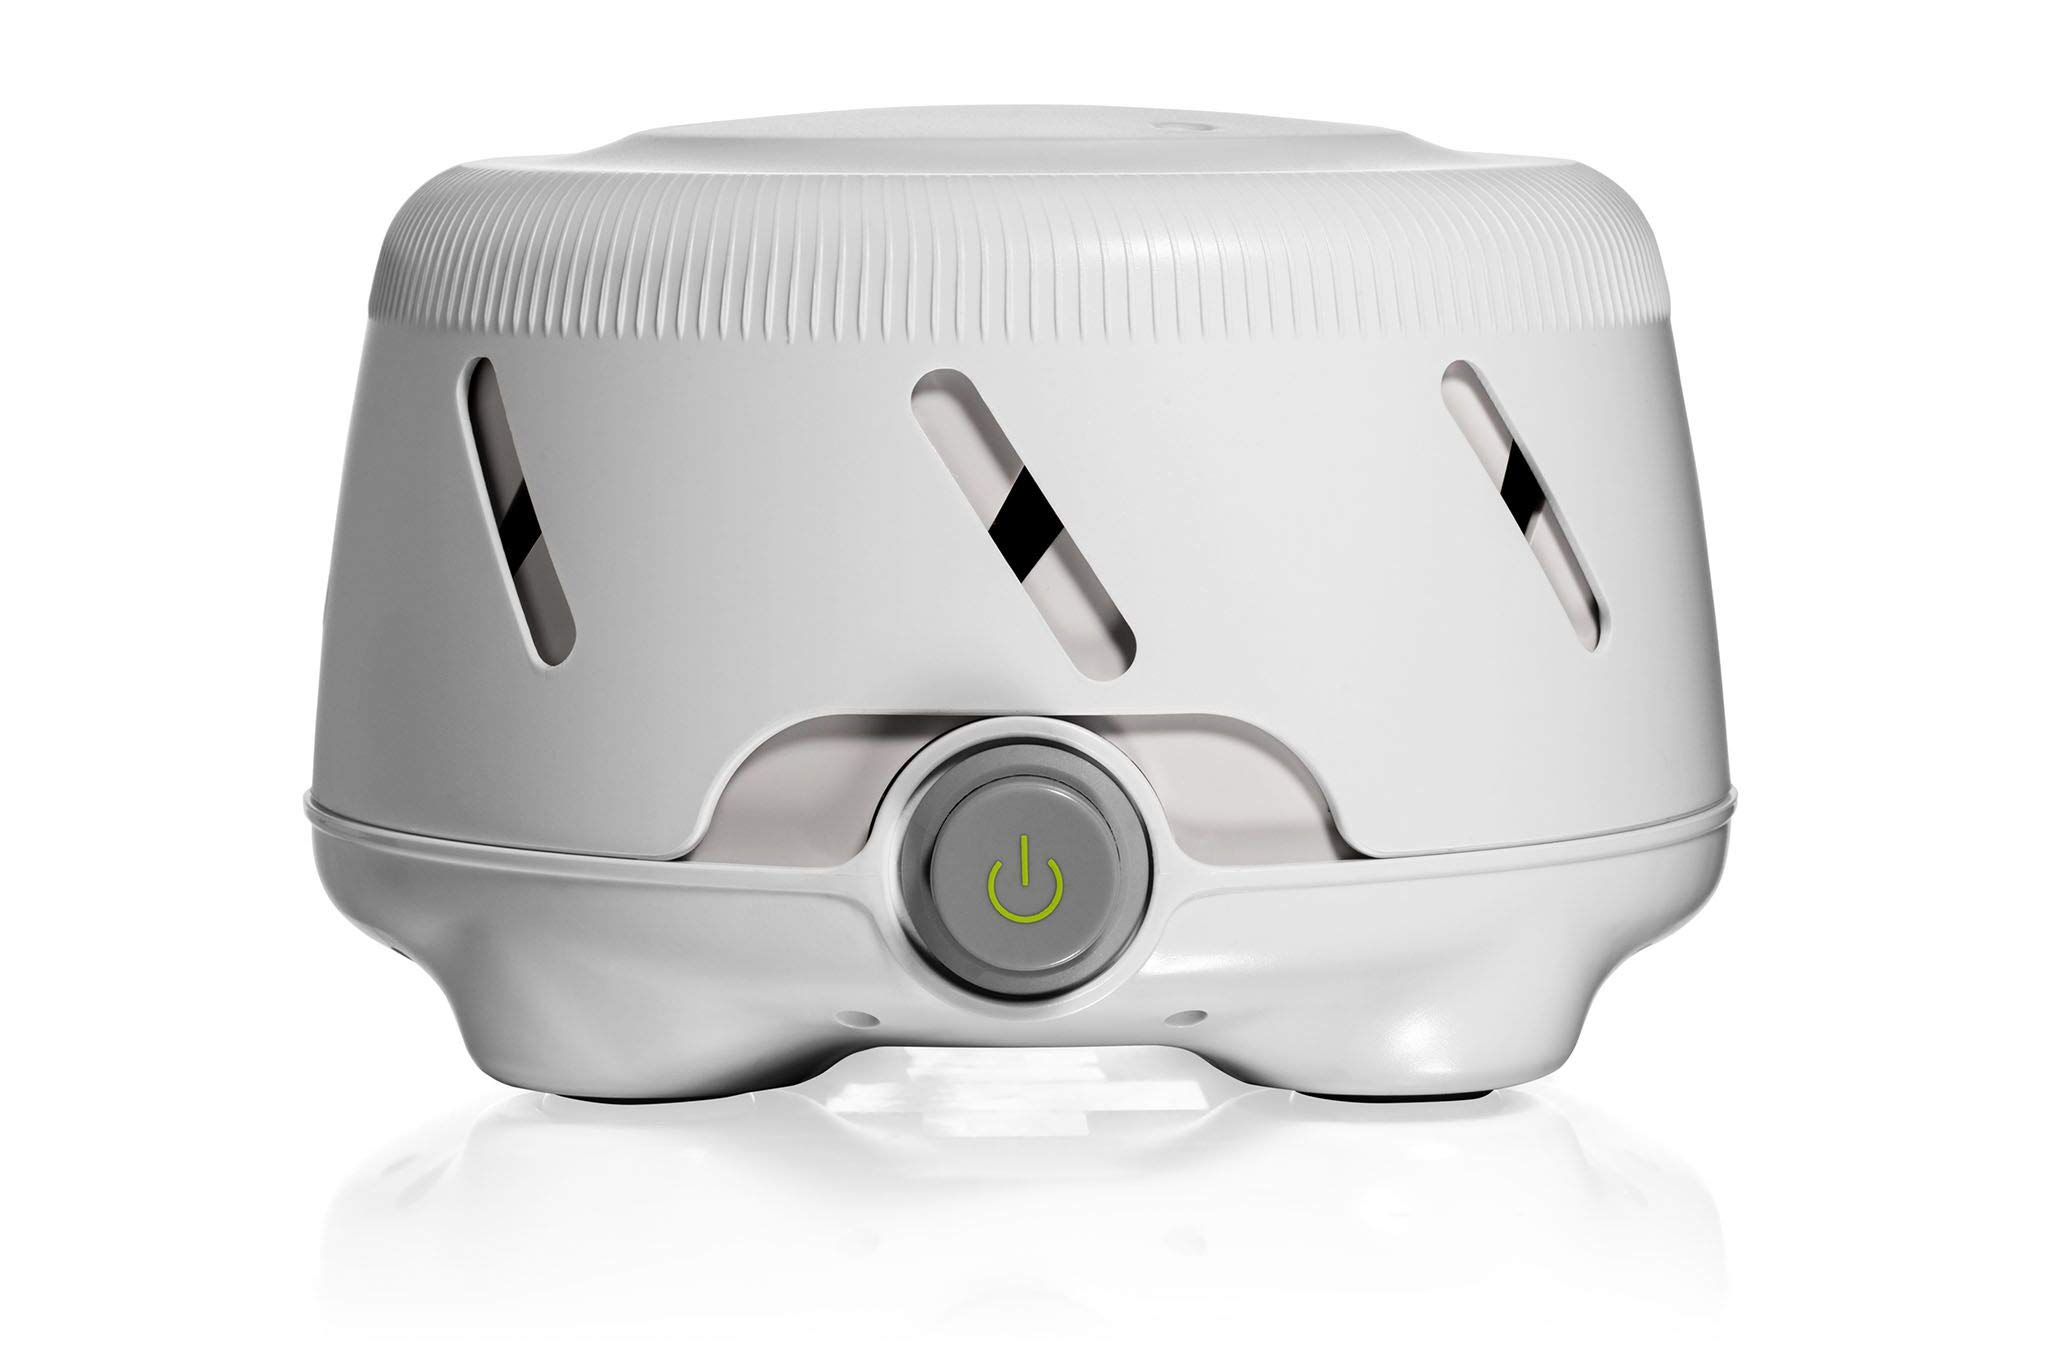 Marpac Dohm UNO White Noise Machine   Real Fan Inside for Non-Looping White Noise   Sound Machine for Travel, Office Privacy, Sleep Therapy   For Adults & Baby   101 Night Trial